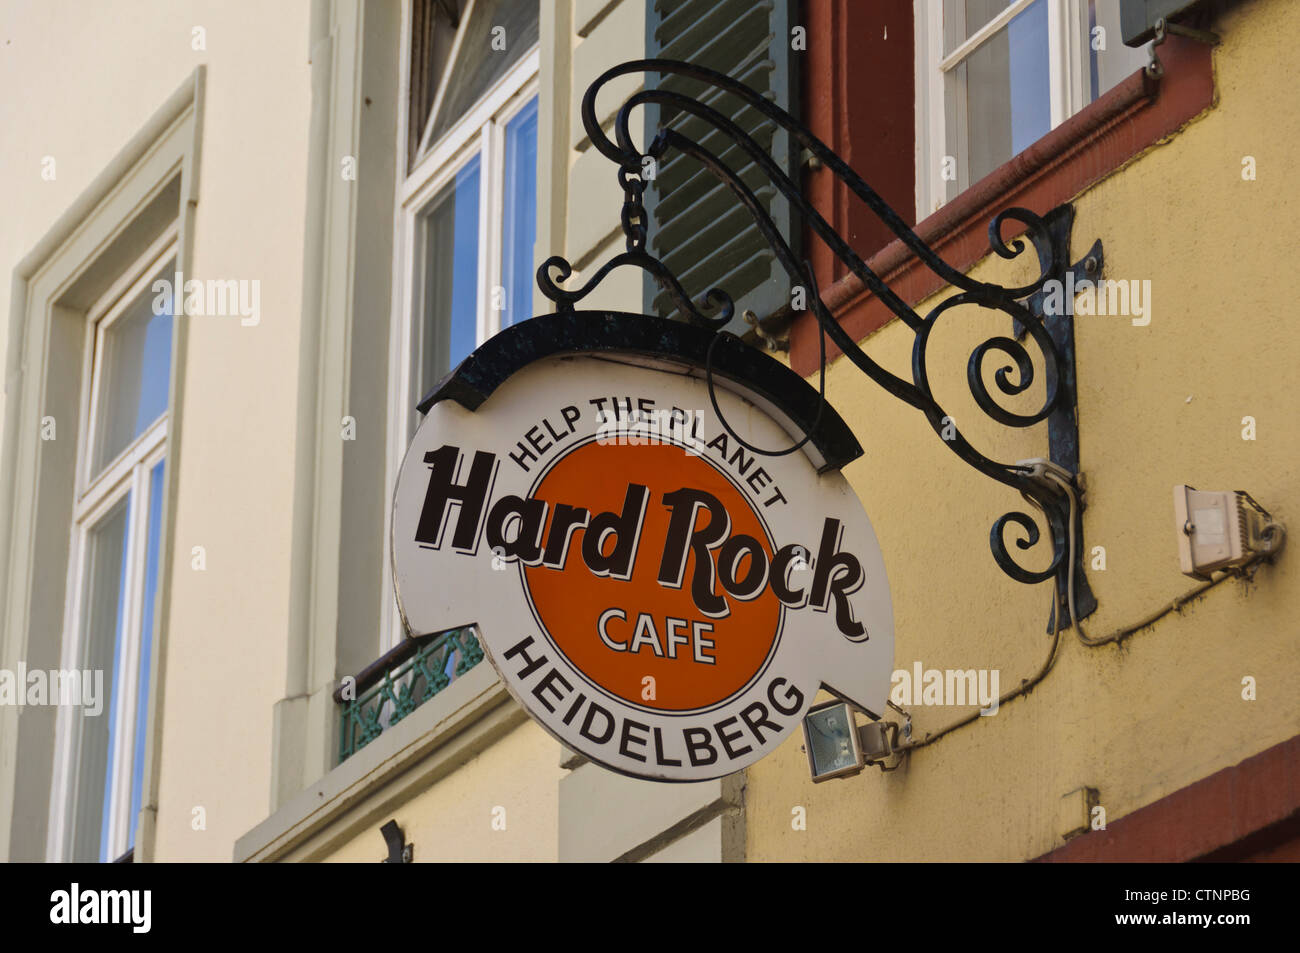 The Hard Rock Cafe sign in the historical Altstadt 'Old Town' of the German City Heidelberg, Germany Europe - Stock Image